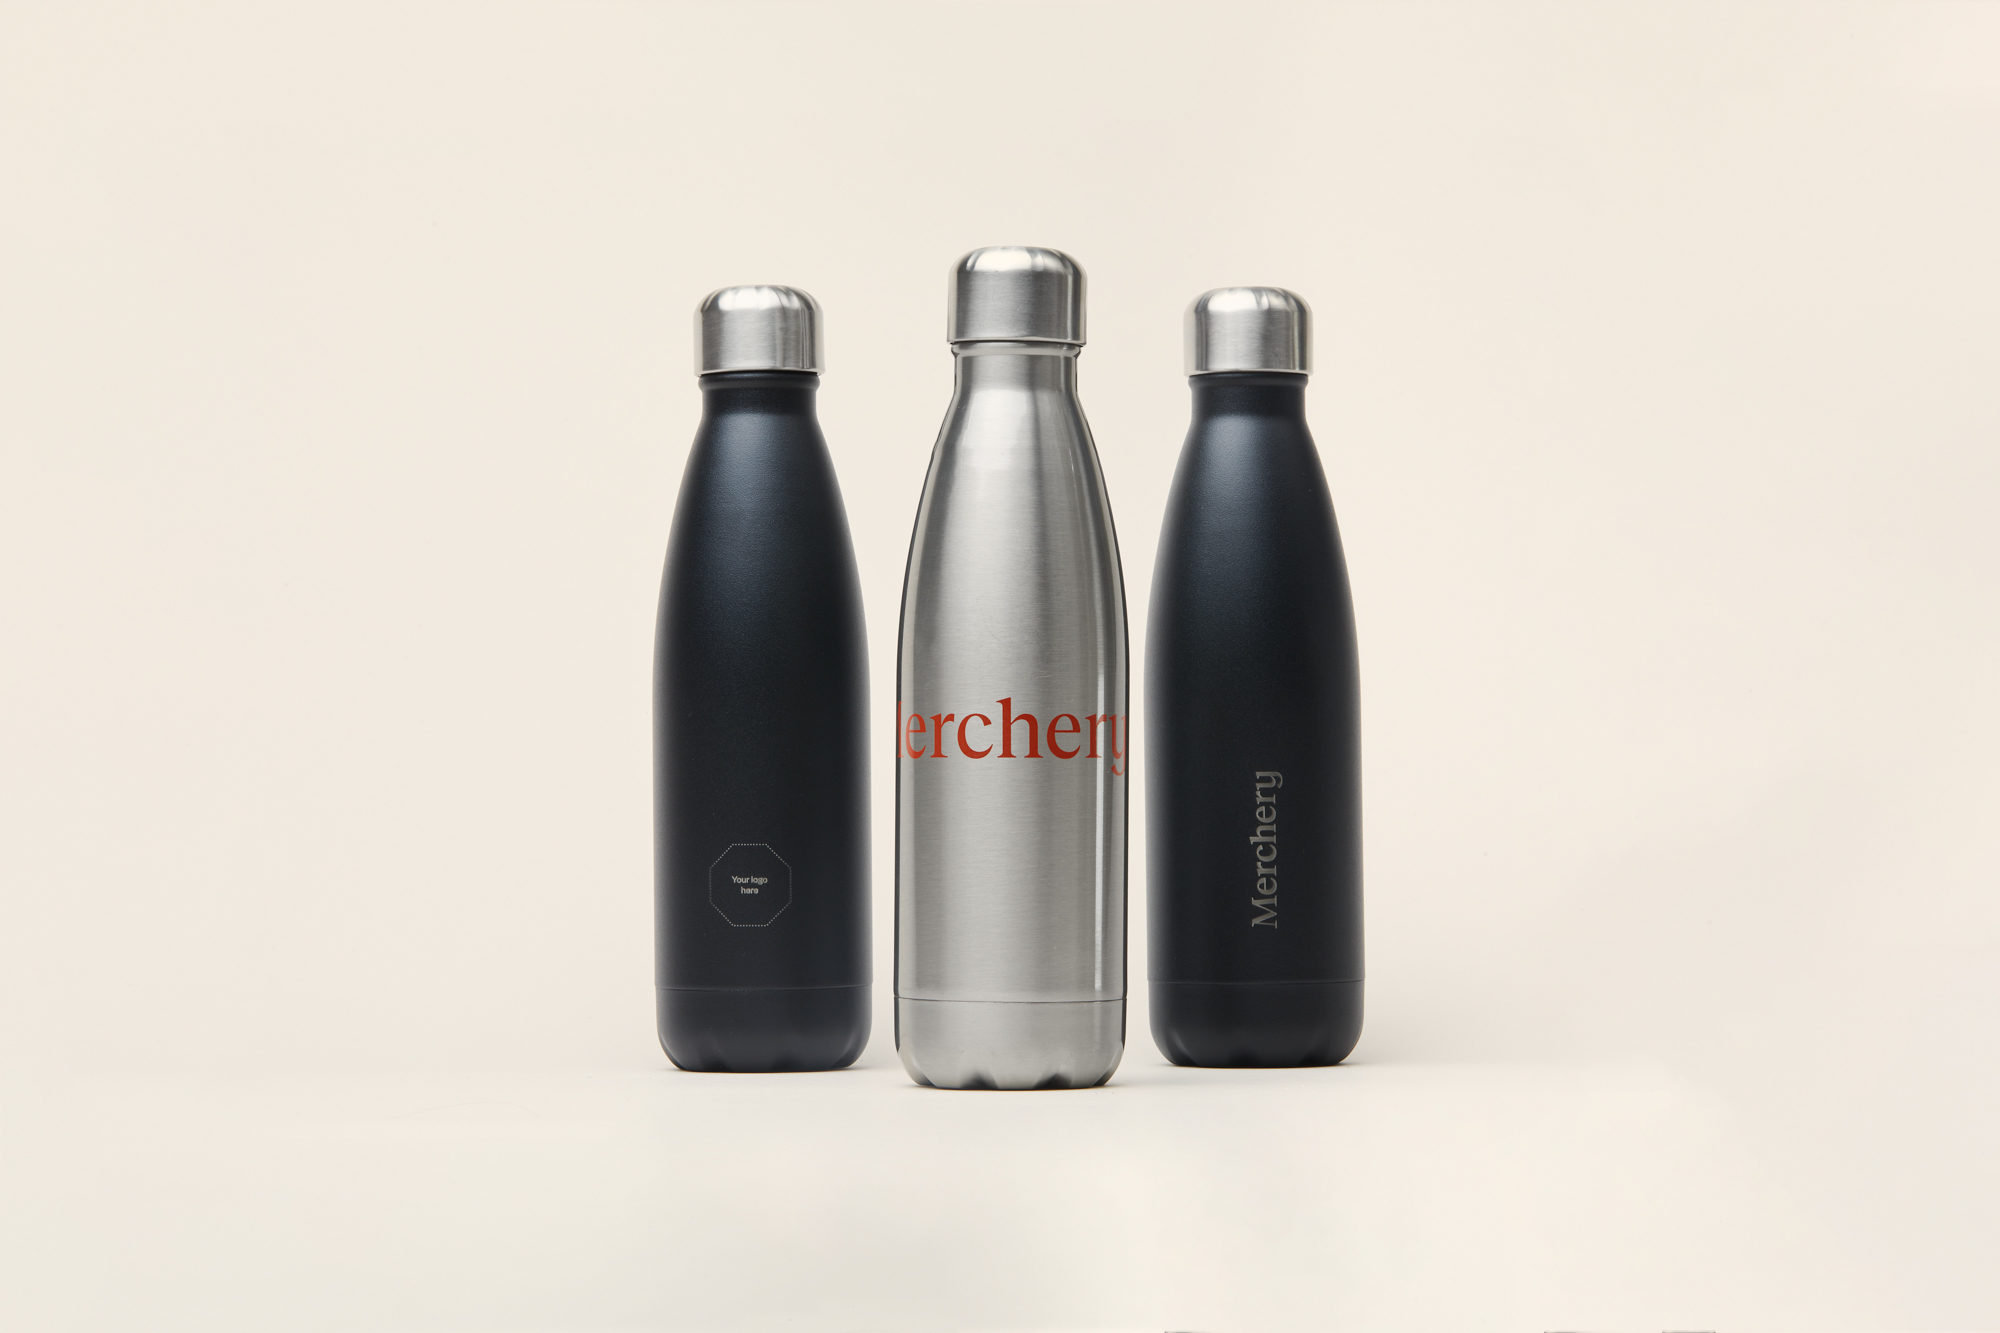 Merchery customized water bottle stainless steel 0.5L insulated sustainable promotional product black and red